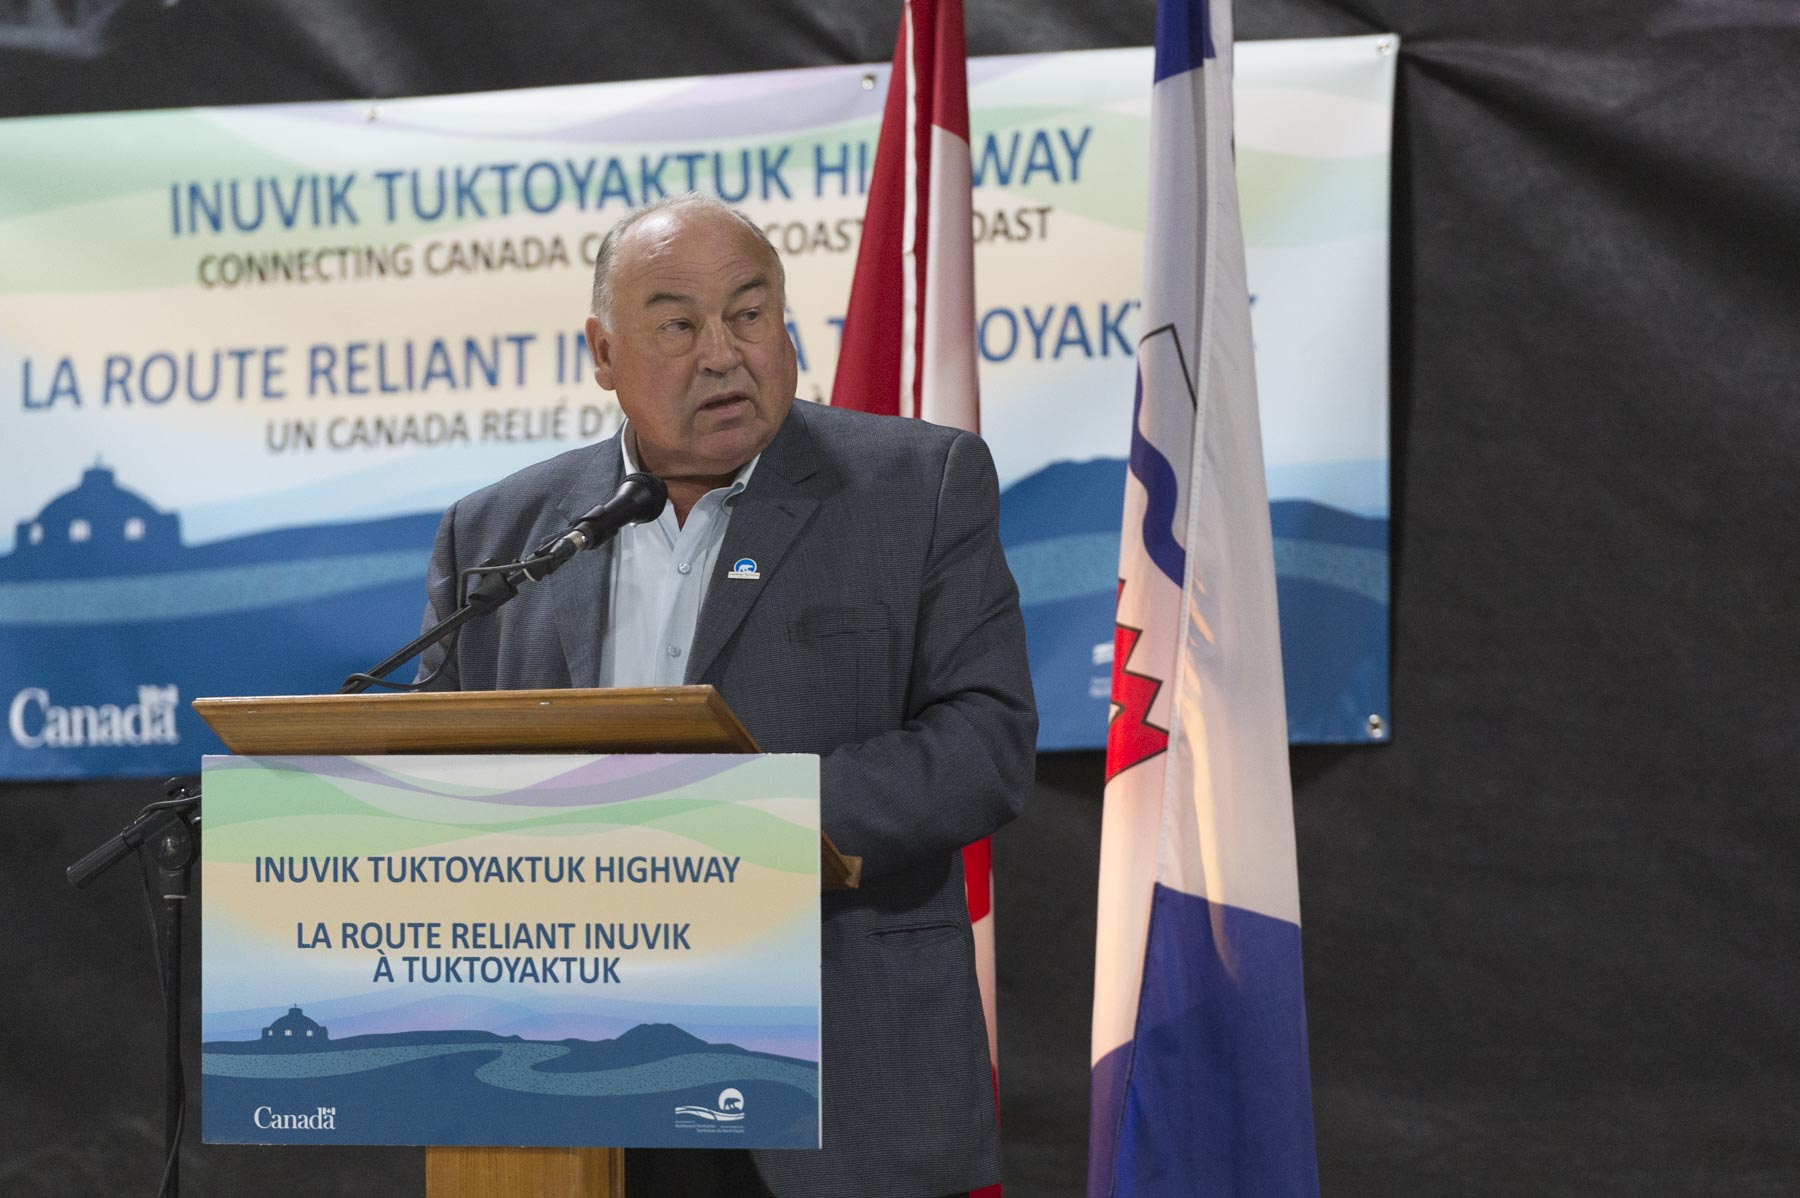 The Honourable Robert McLeod, Premier of the Northwest Territories also delivered remarks.